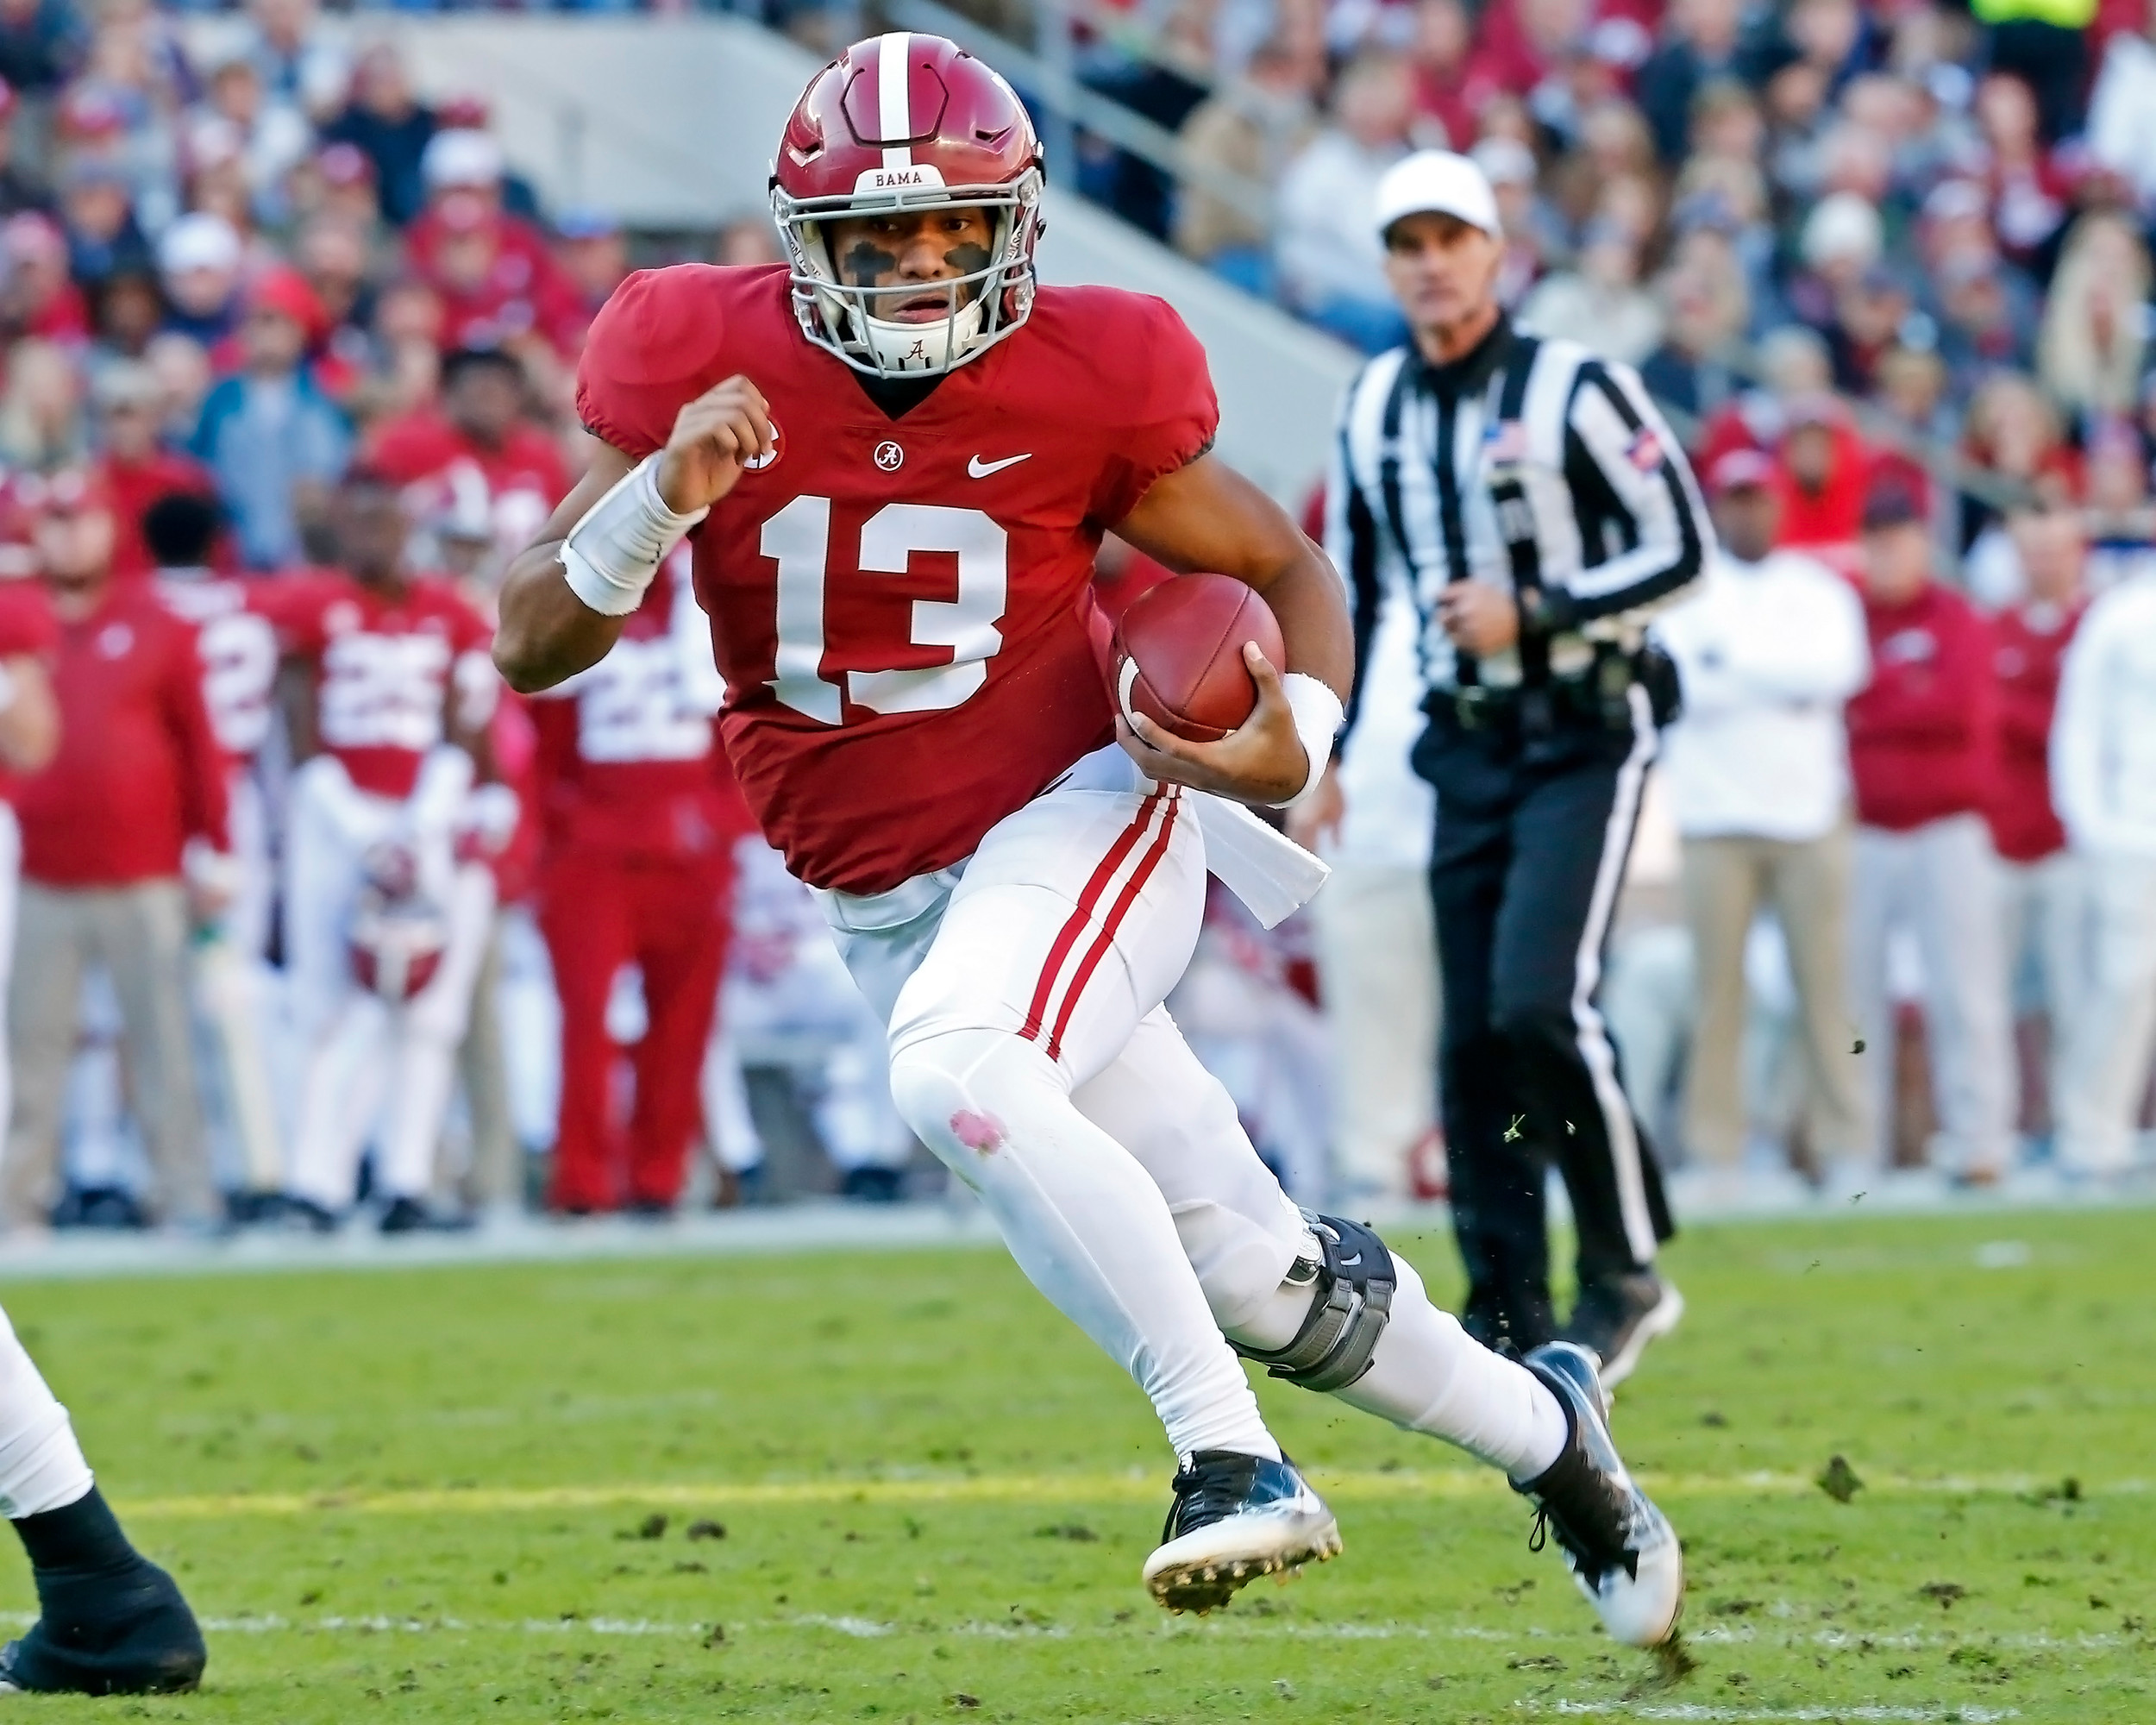 Alabama Crimson Tide quarterback Tua Tagovailoa (13) rushes from the pocket during the game between Mississippi State and the University of Alabama at Bryant-Denny Stadium in Tuscaloosa, Al. Credit: Jason Clark / Daily Mountain Eagle